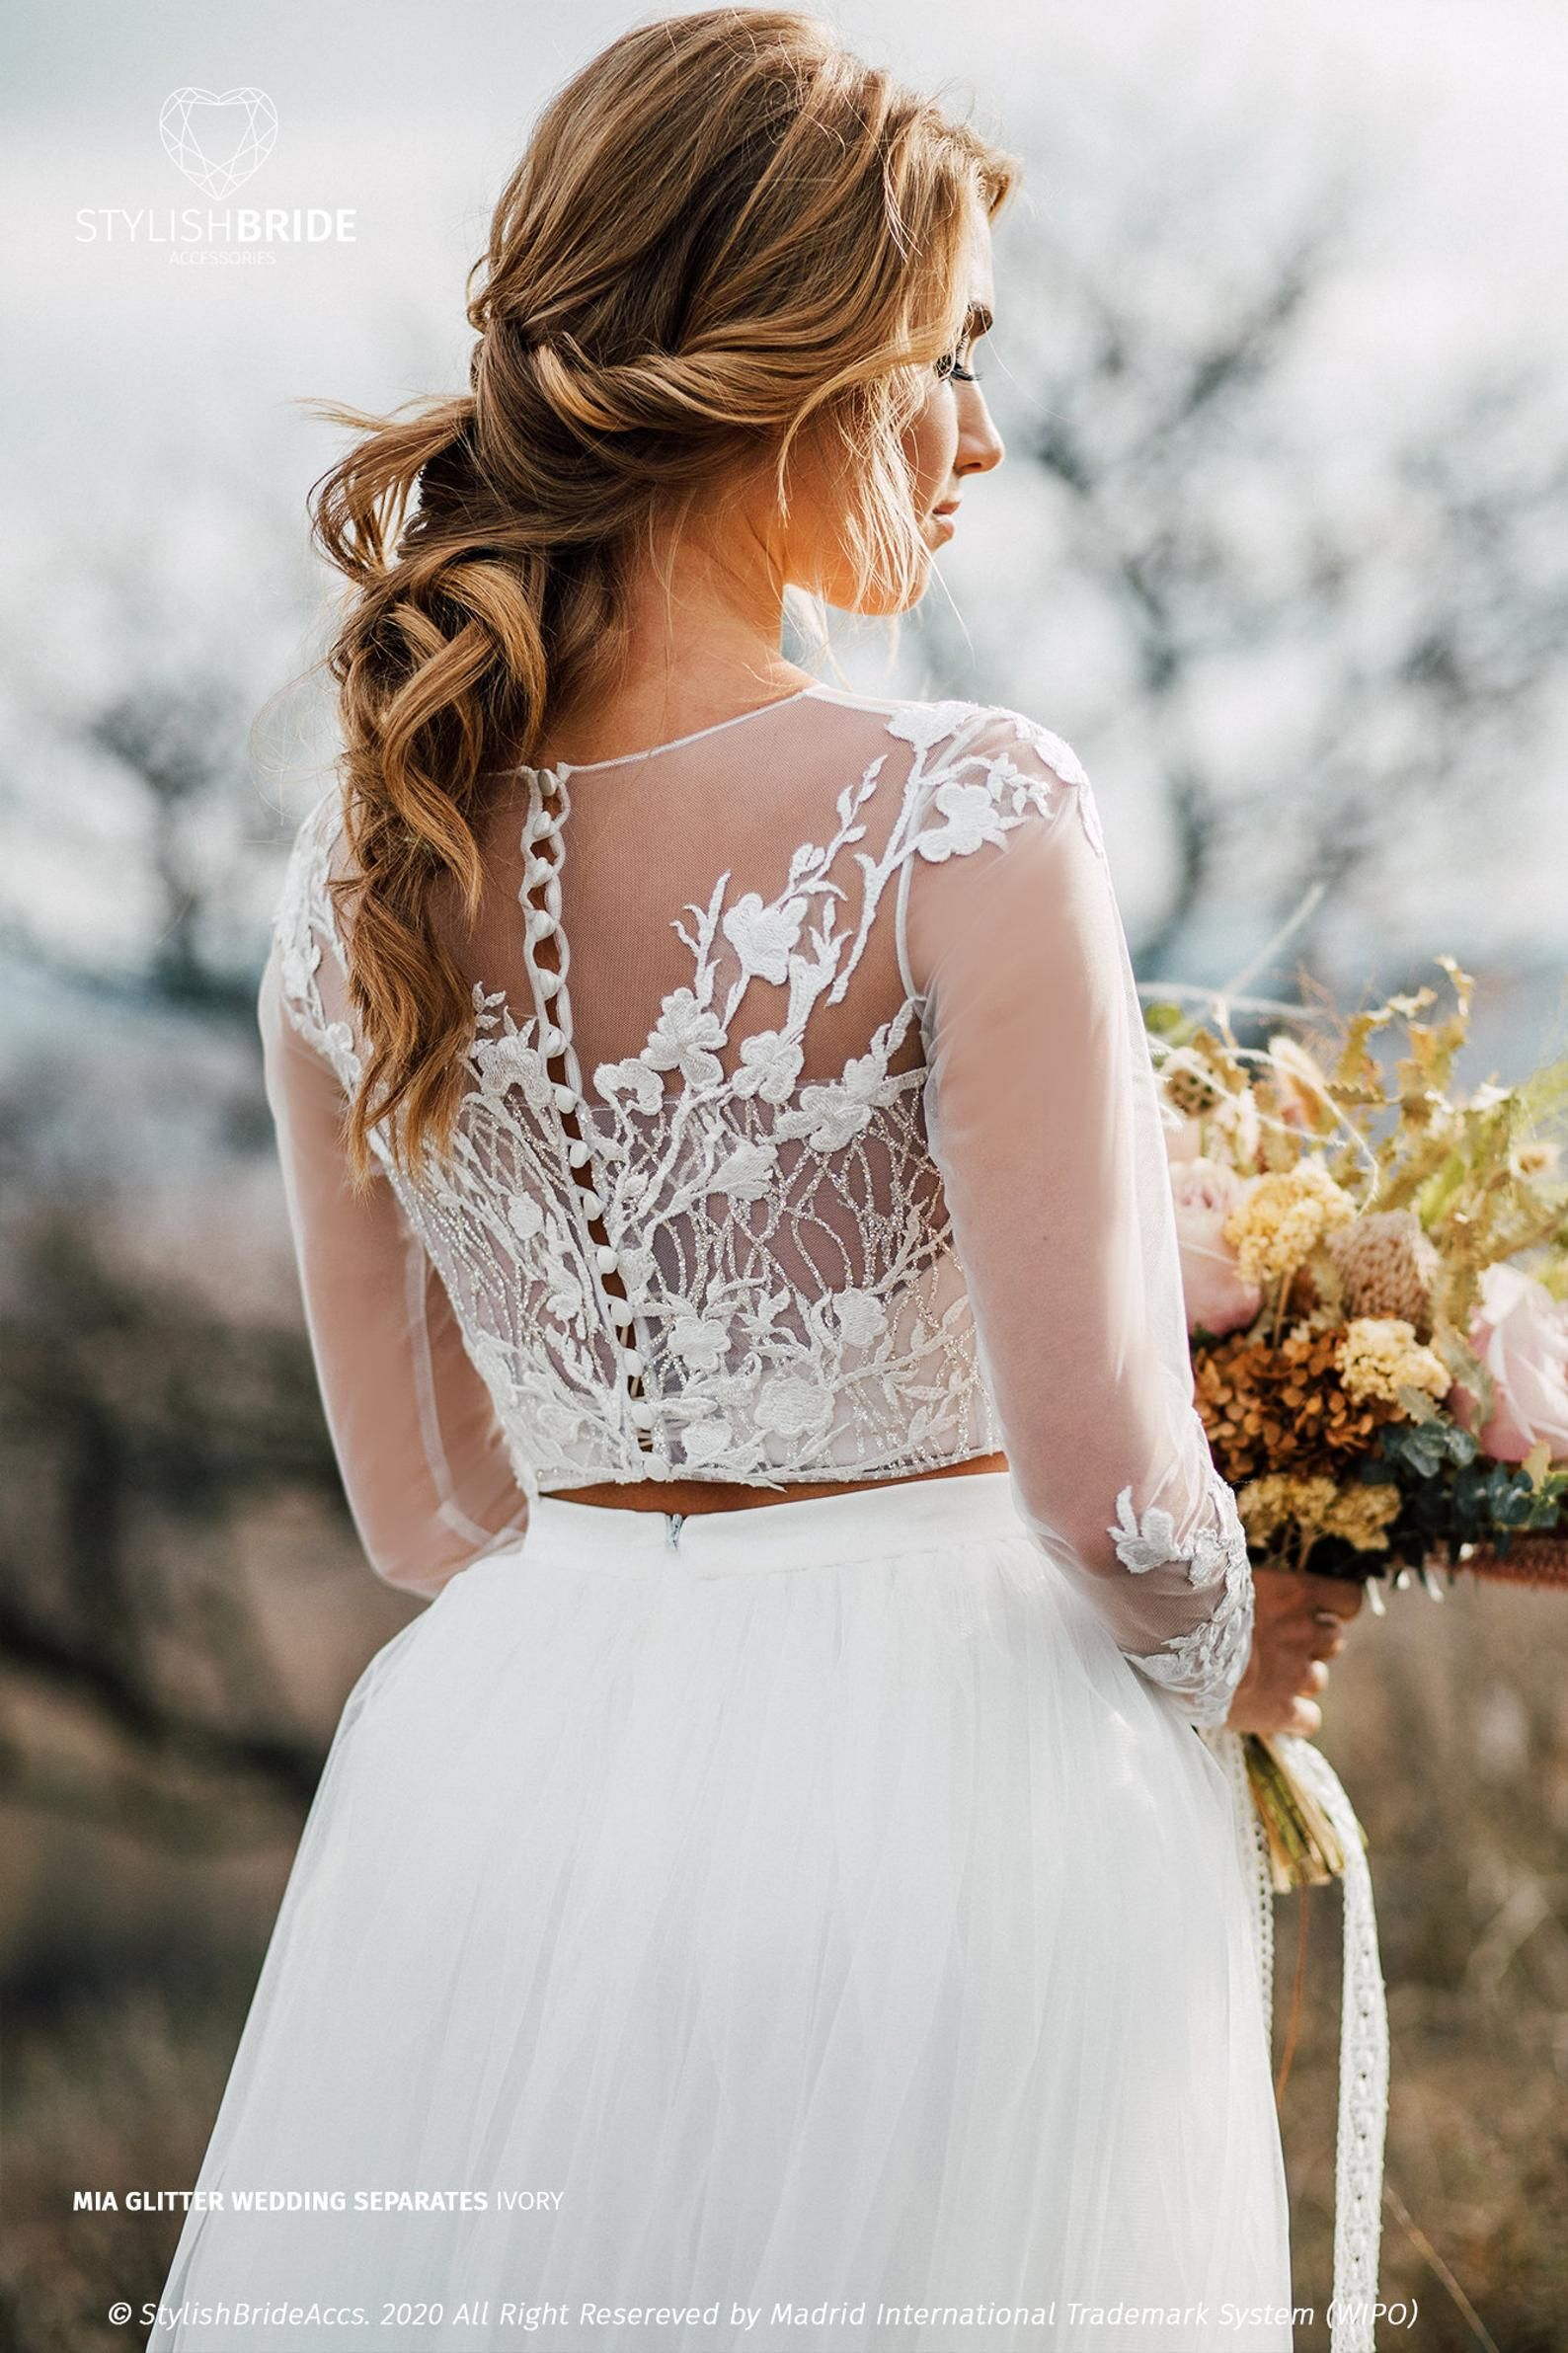 Mia Glitter Wedding Top Waves Glitter And Flower Lace Crop Top With Long Sleeves Engagement Plus Size Disney Wedding In 2021 Boho Bridal Wedding Dress Long Sleeve Bohemian Wedding Dress [ 2383 x 1588 Pixel ]